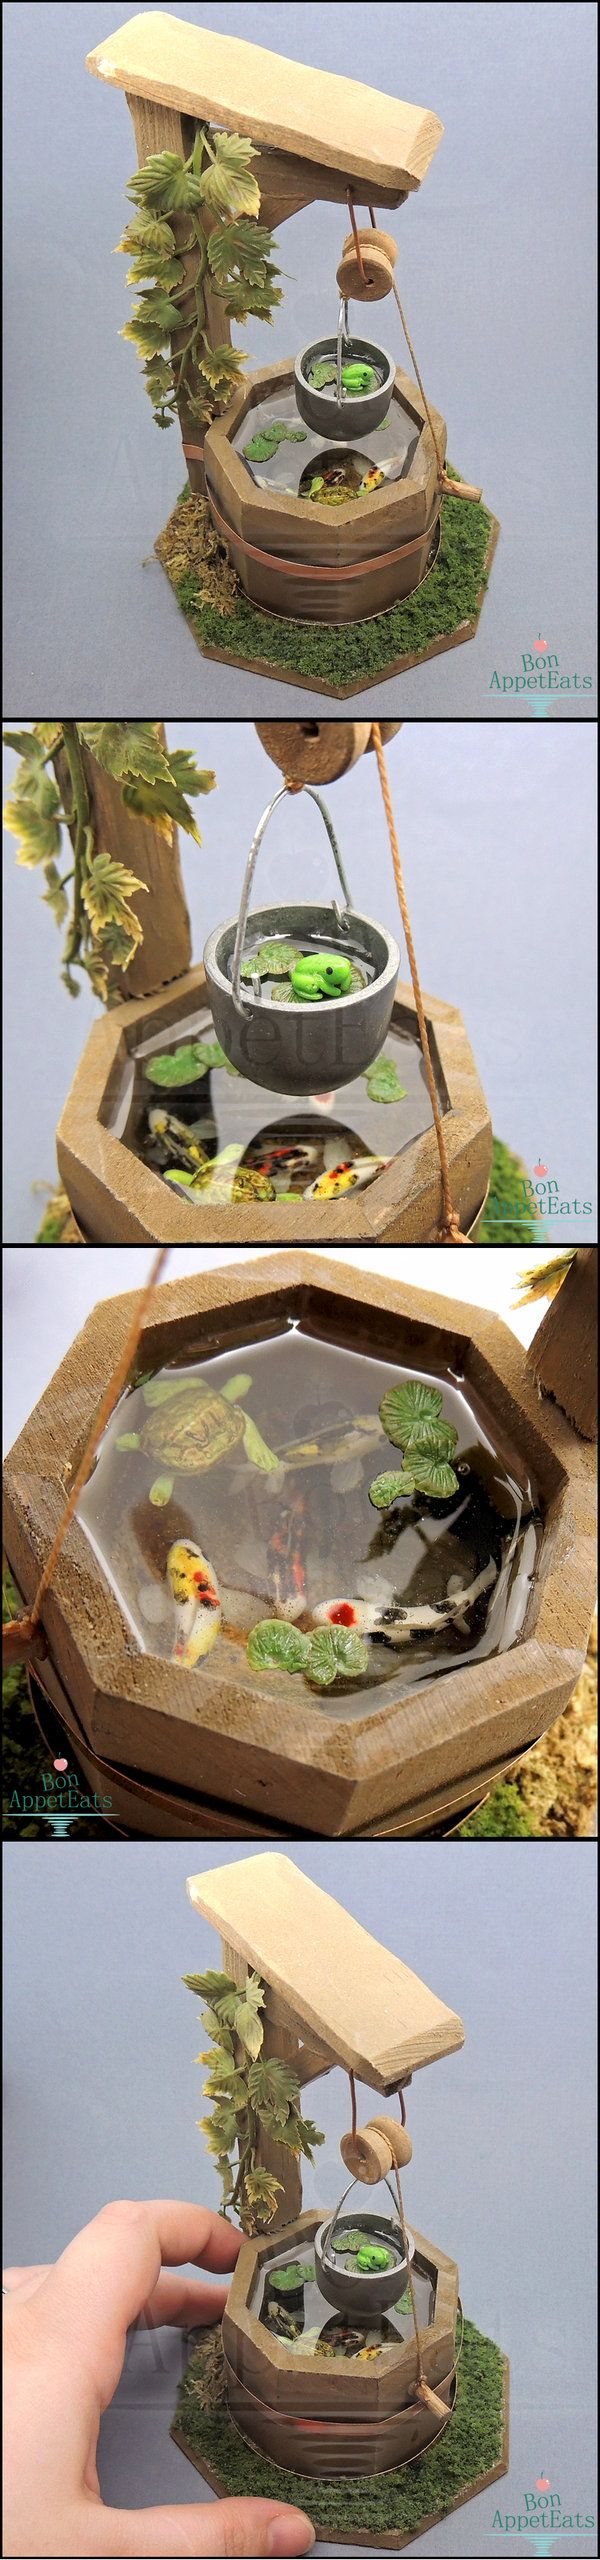 1:12 Dollhouse Scale Miniature Well Pond by Bon-AppetEats.dev... on @DeviantArt